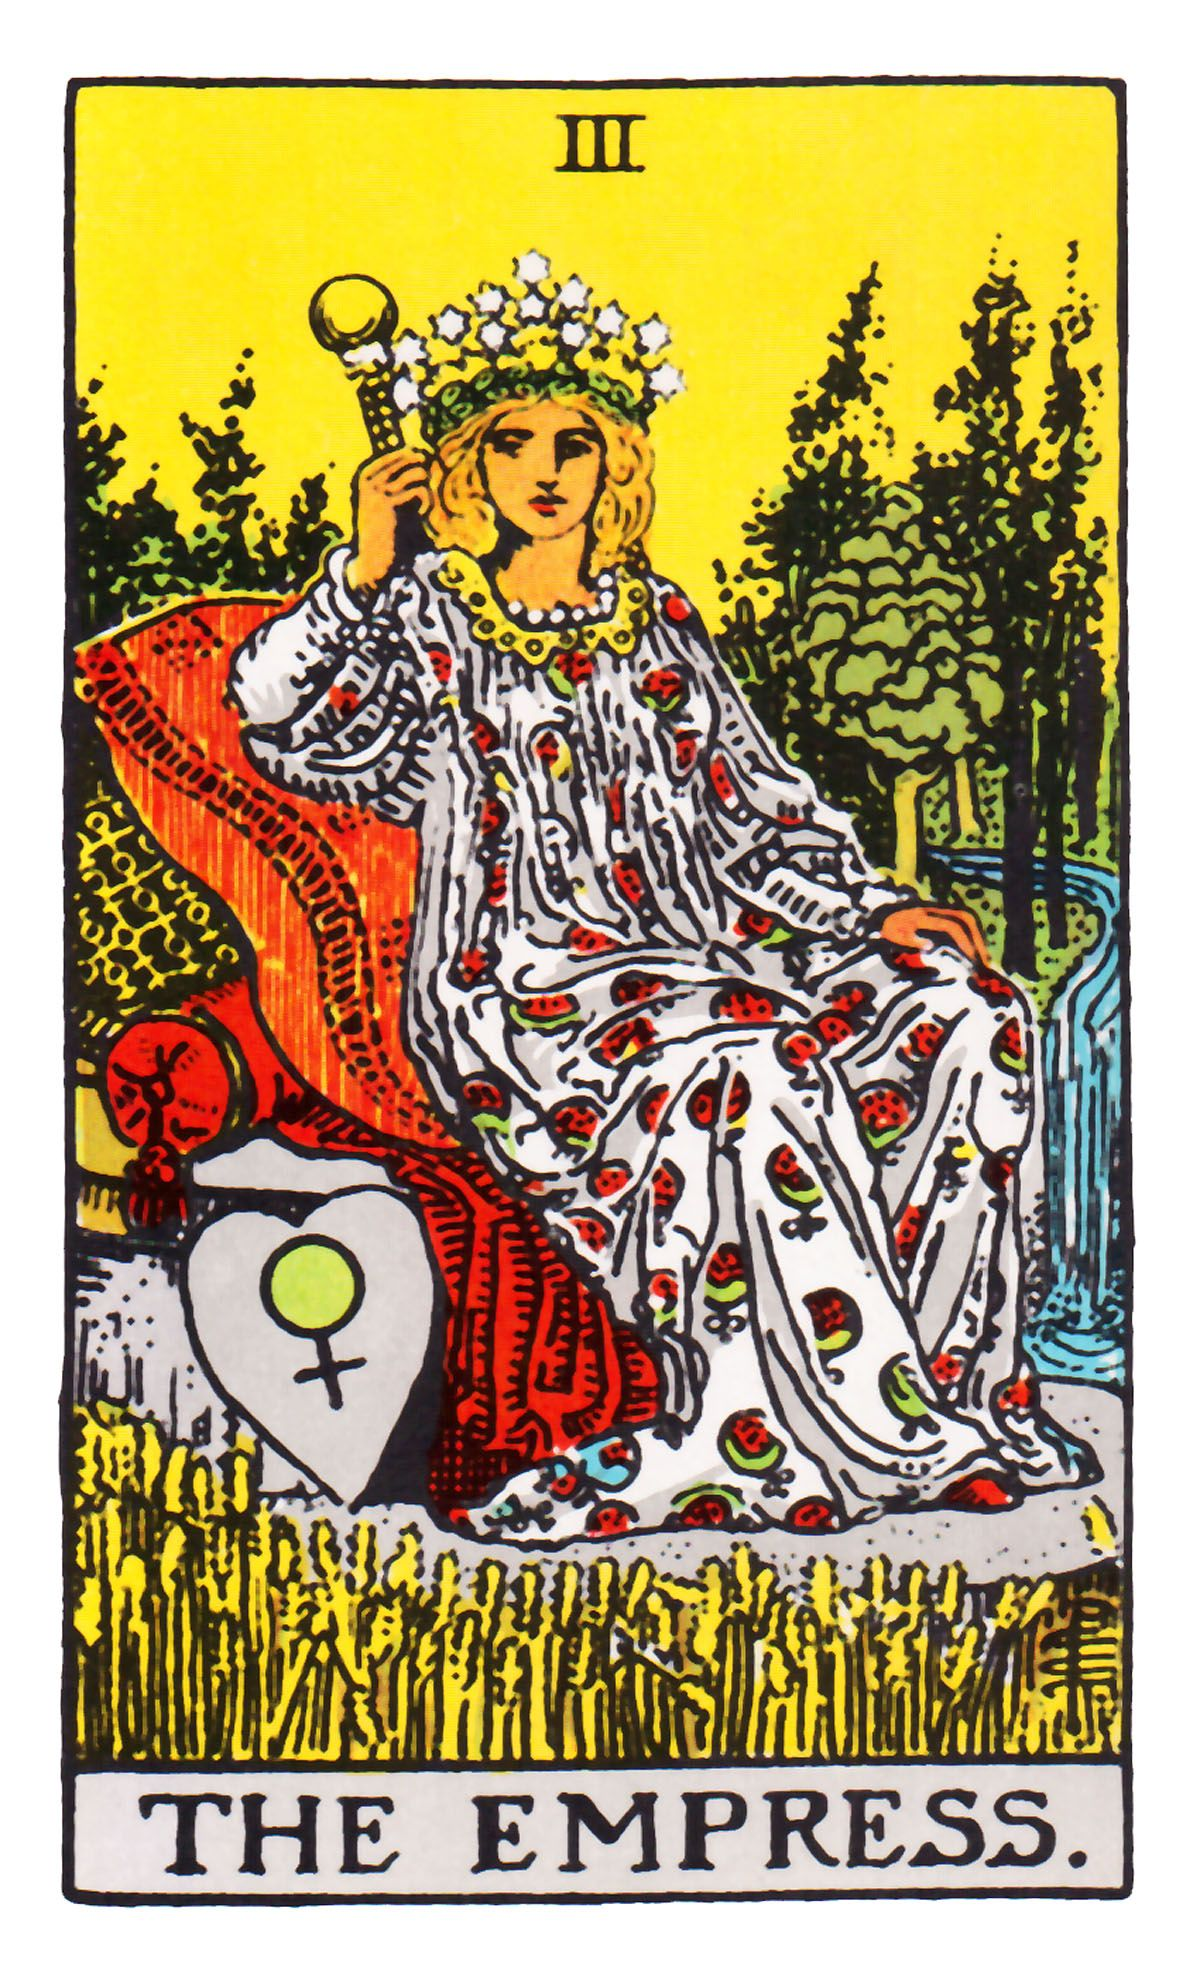 cdec090165257 This is a tarot card. The main character